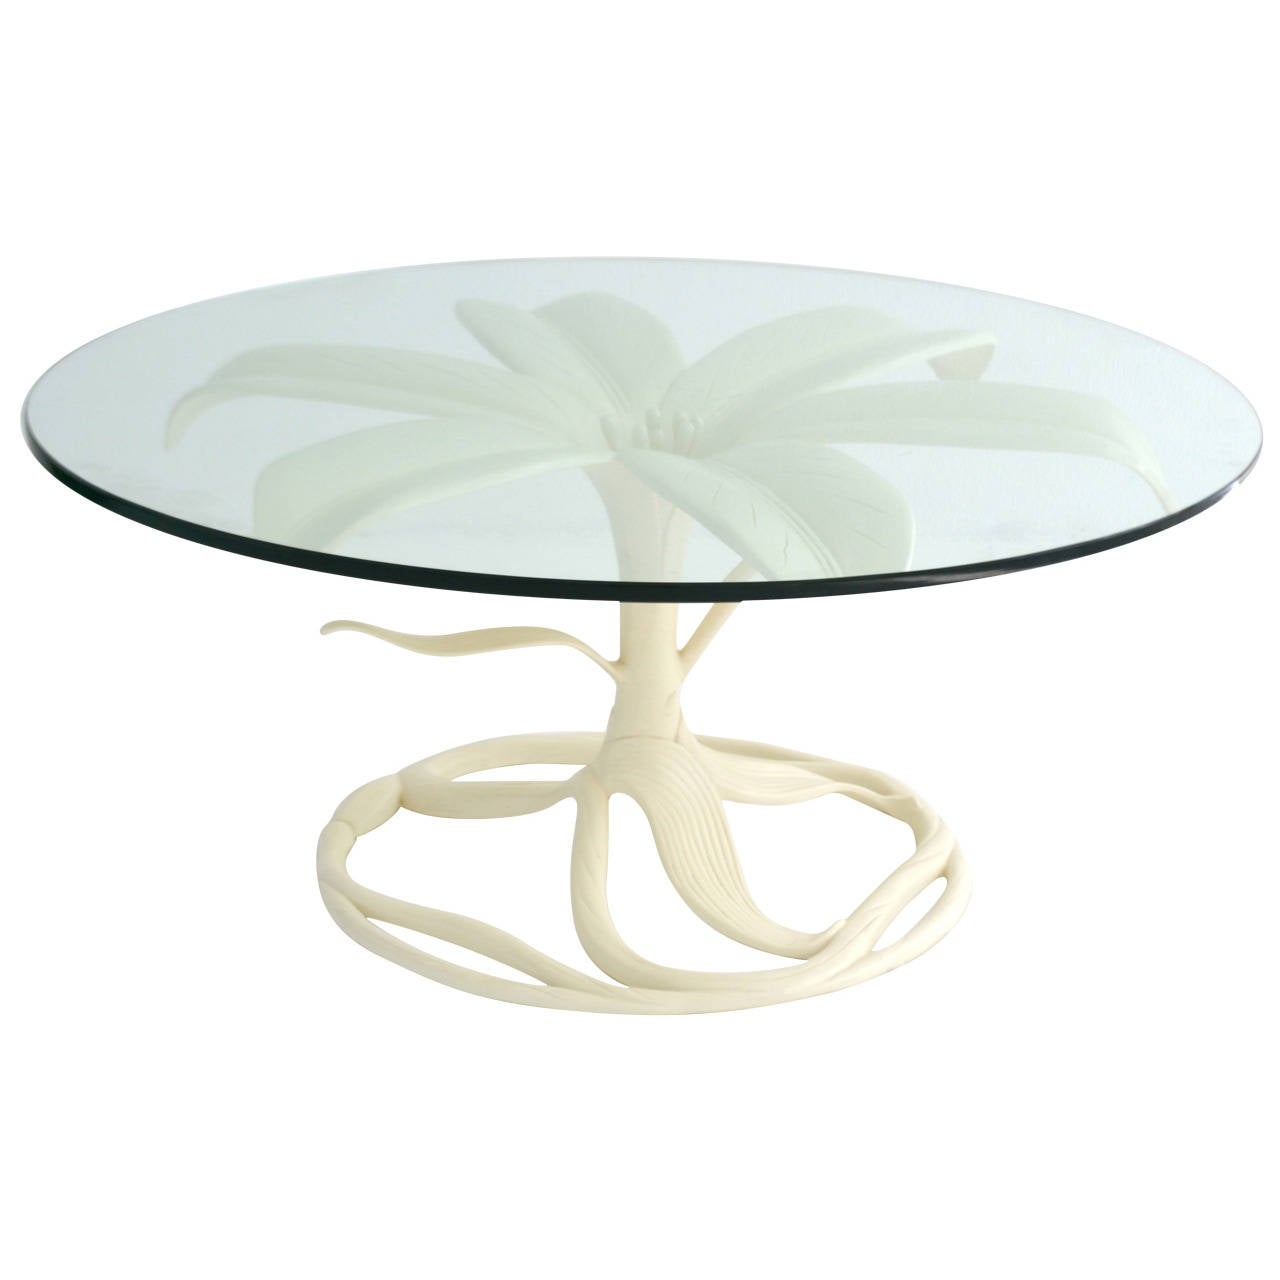 Mid century white lacquered glass top cocktail table by for White and glass coffee table